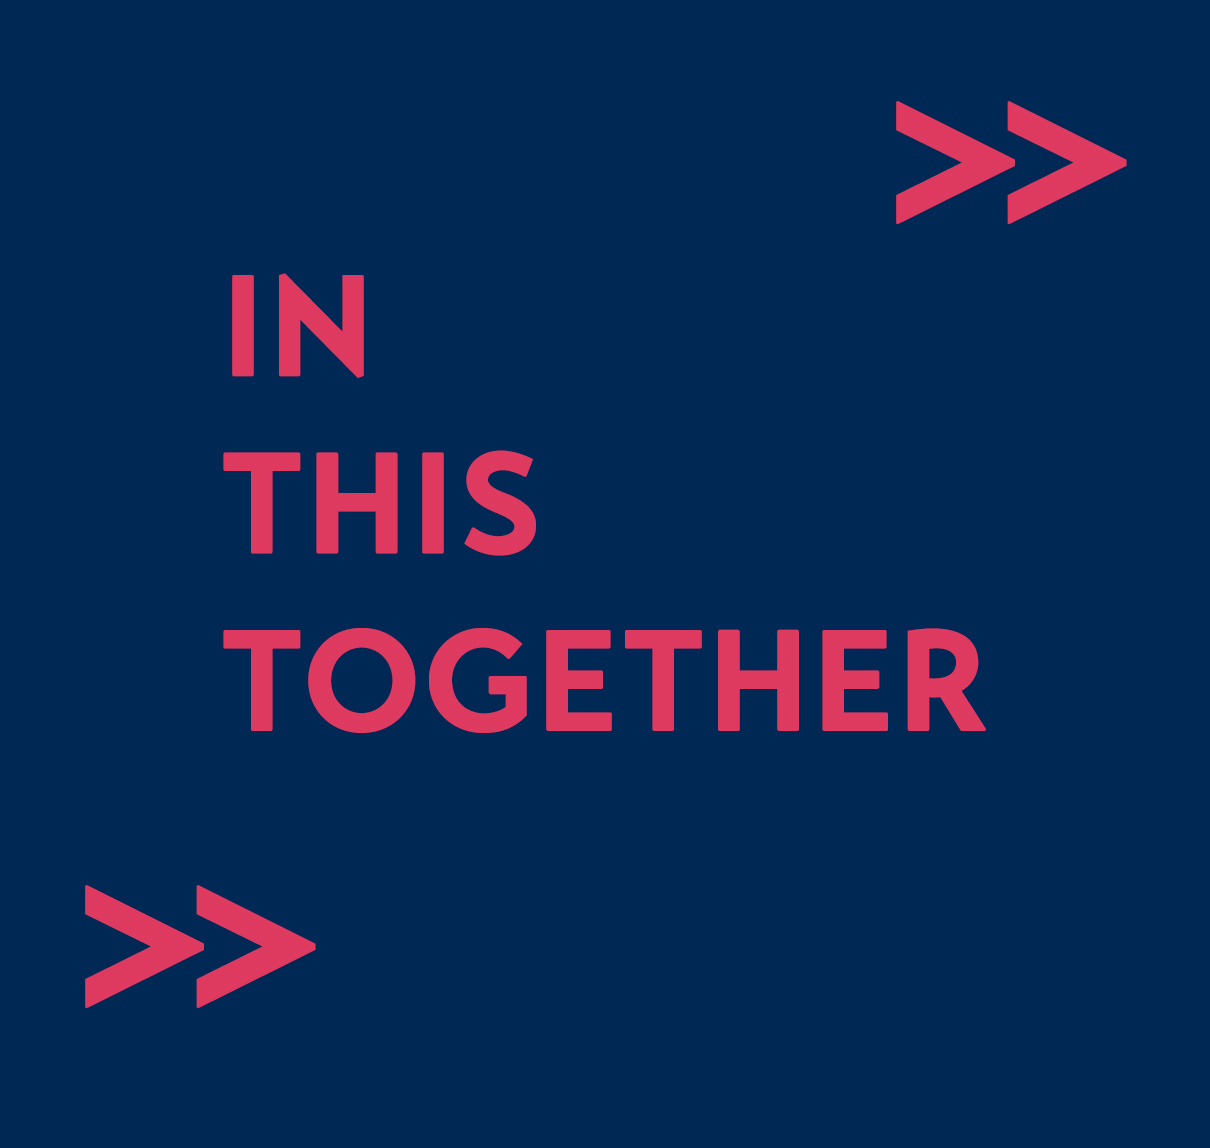 In This Together Graphic